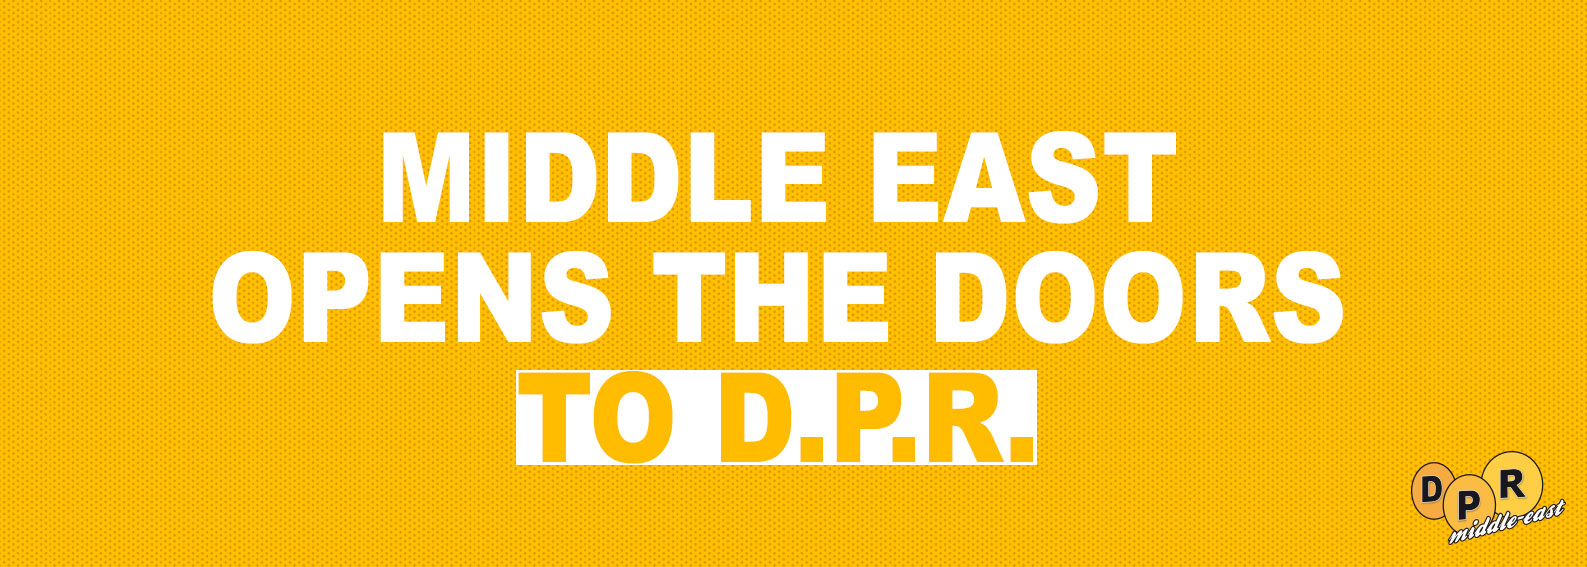 DPR Middle East